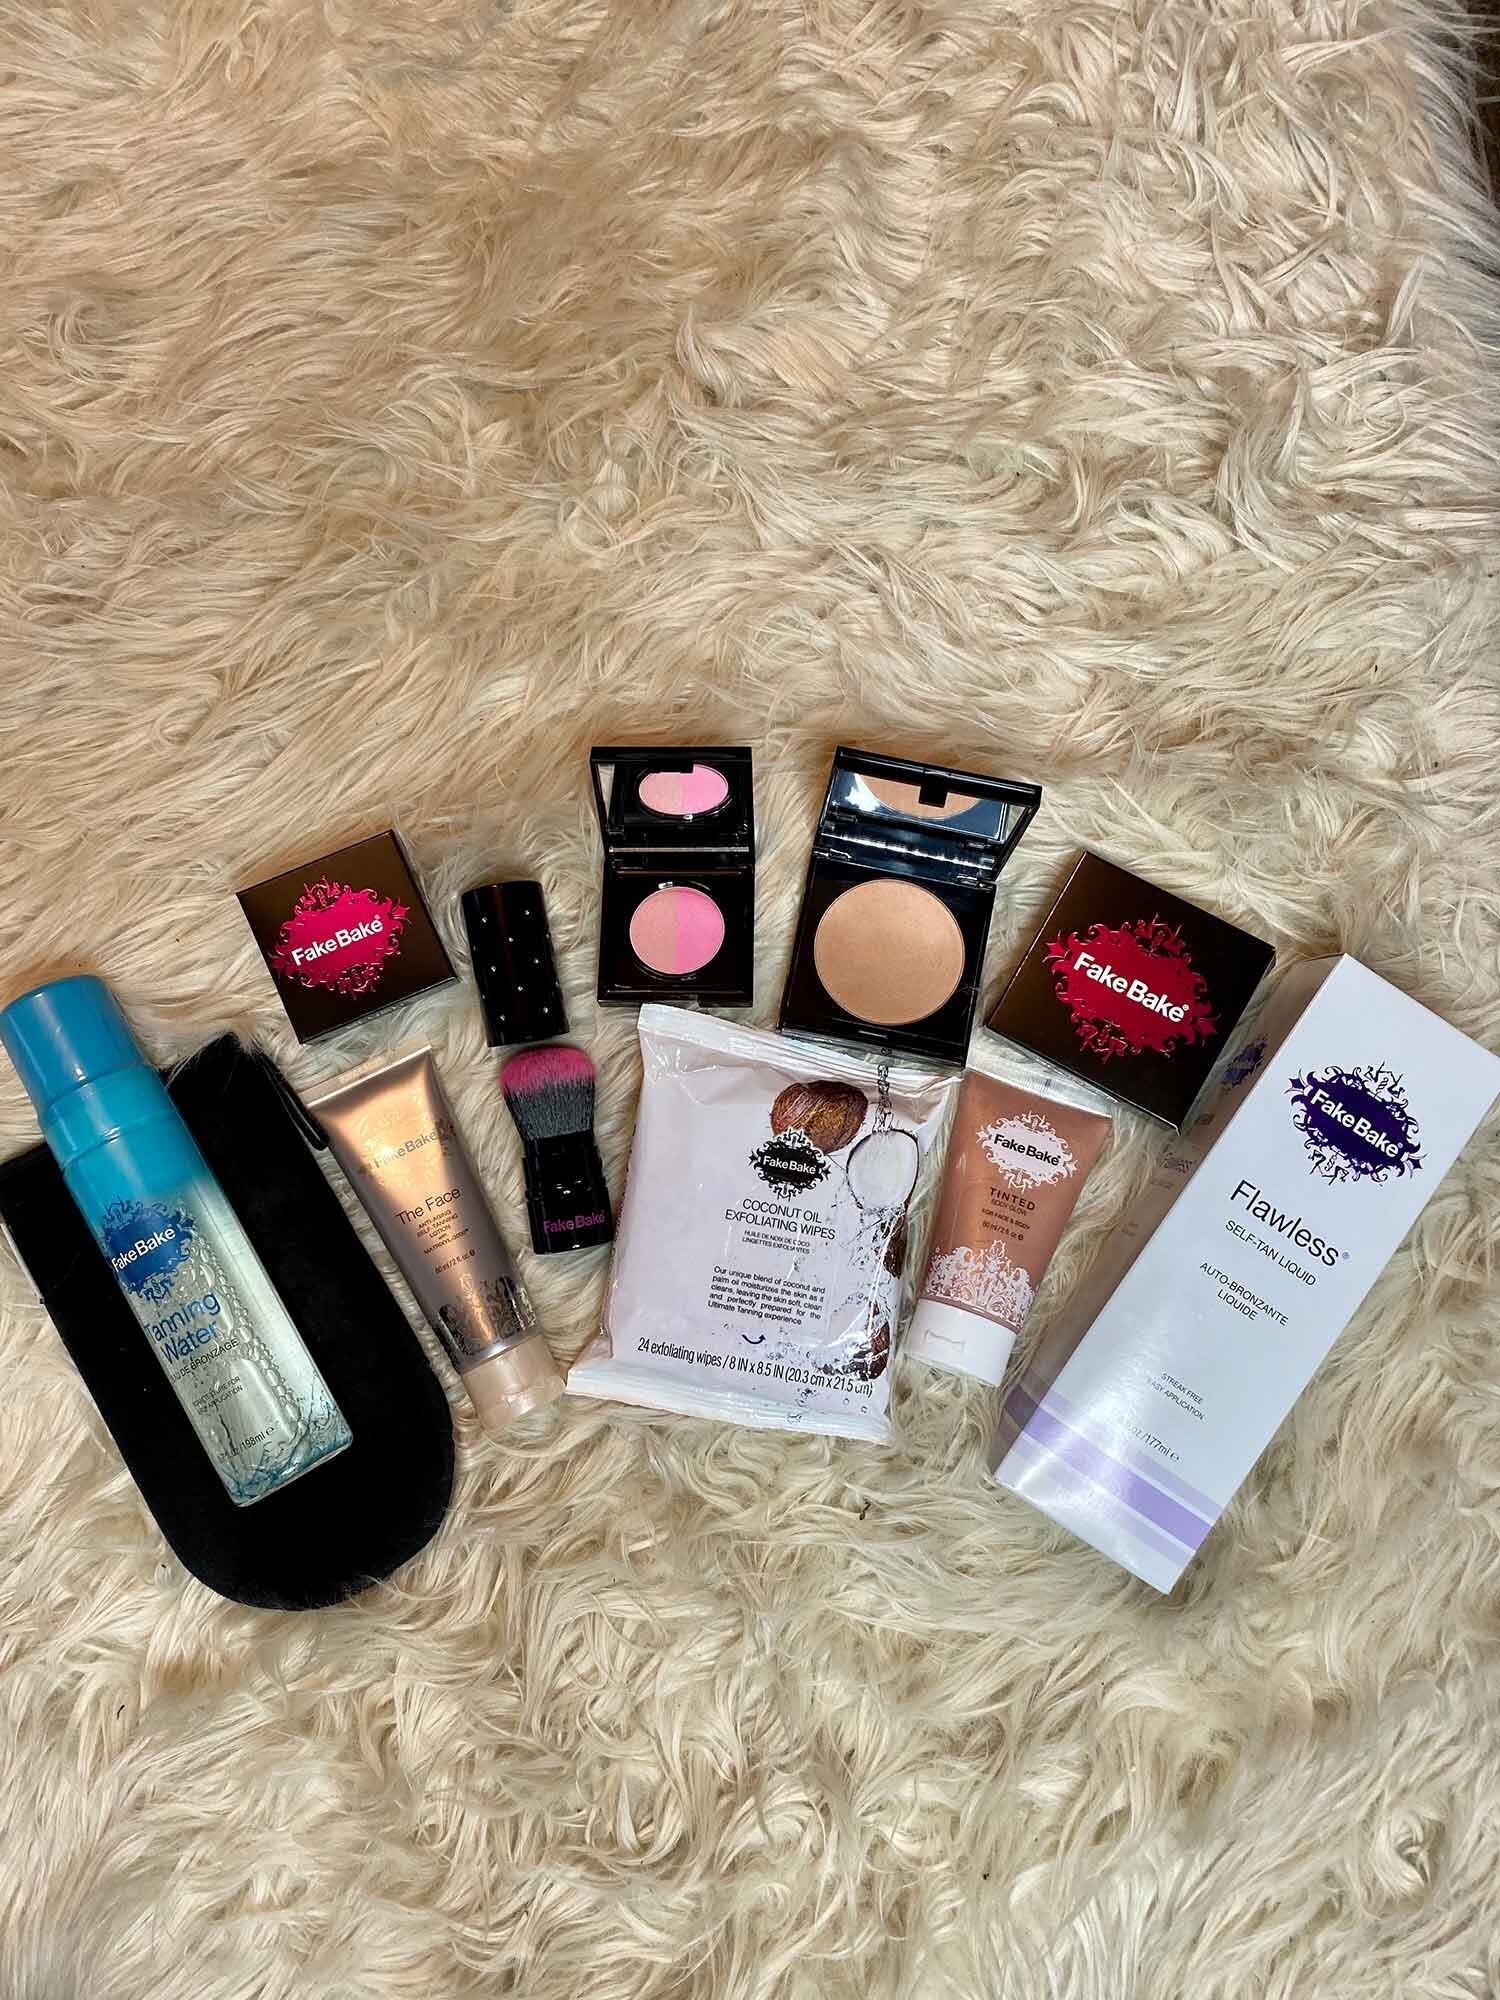 Fake bake tanning water and products on rug